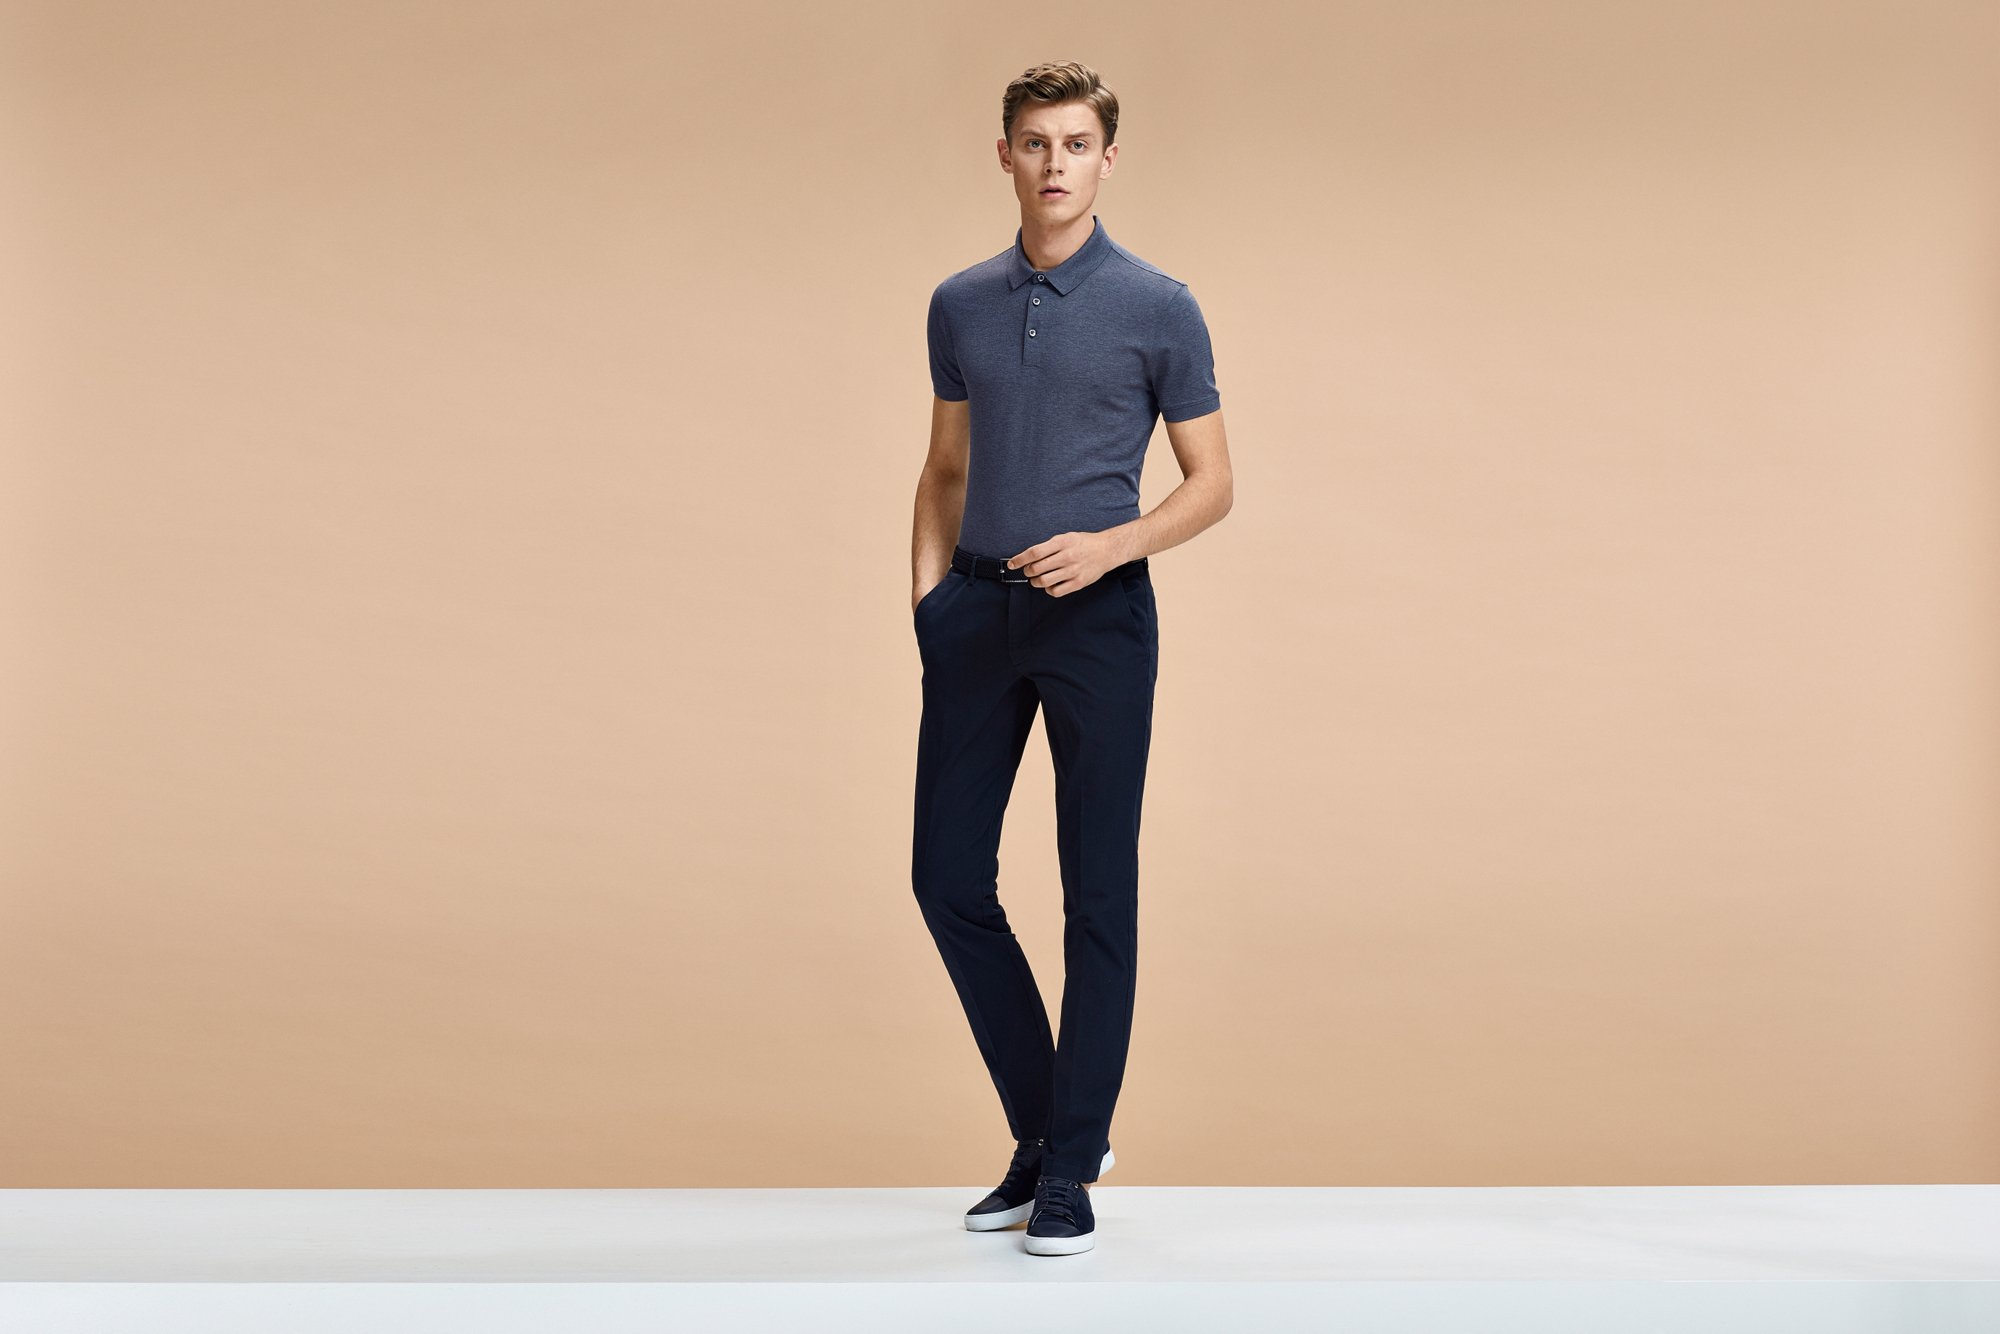 Grey polo shirt, black jeans and black sneakers by BOSS Menswear